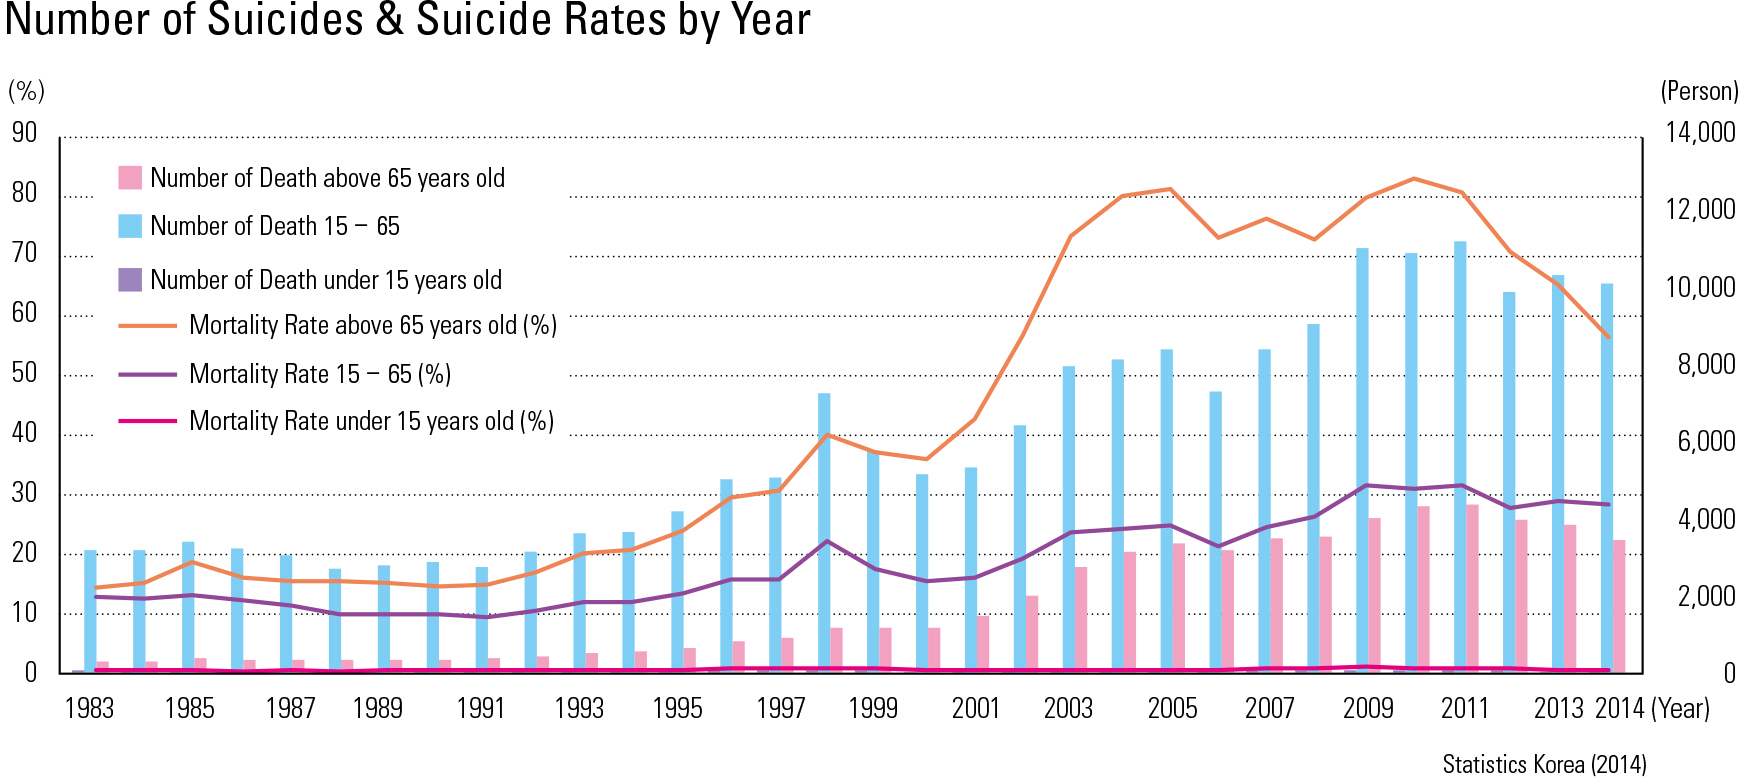 Number of Suicides & Suicide Rates by Year